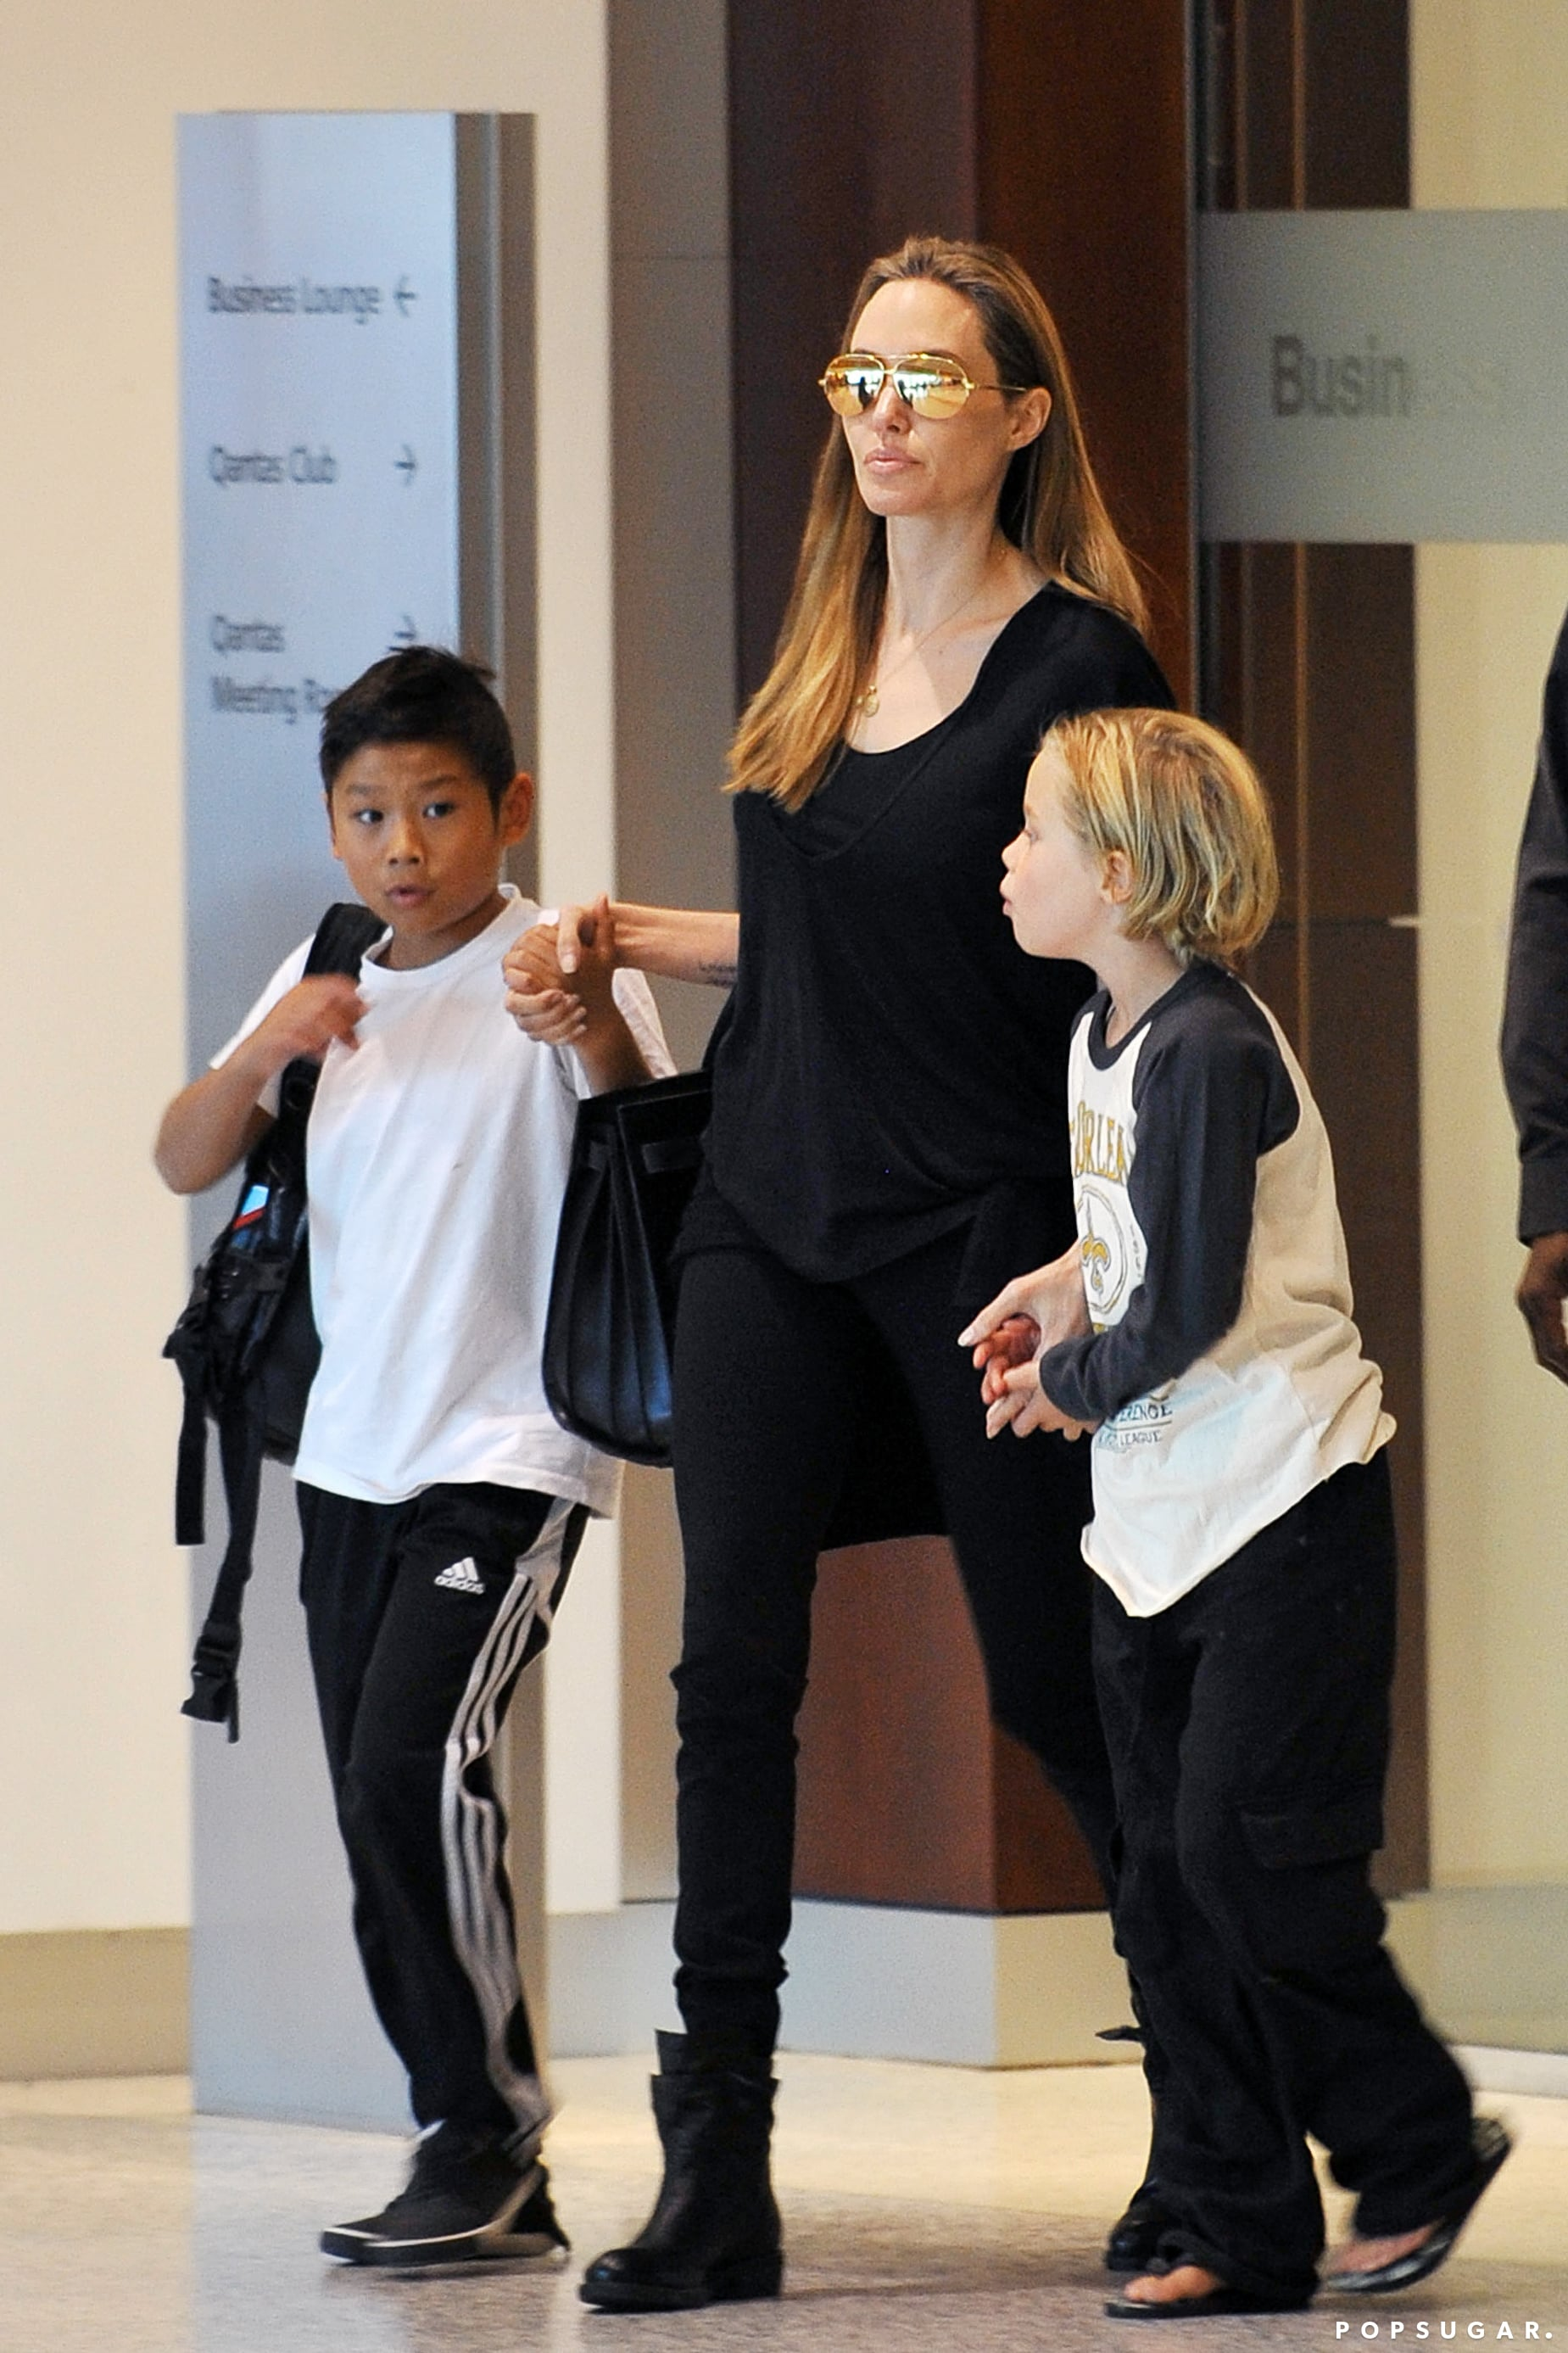 Angelina Jolie held Shiloh's and Pax's hands as they departed the airport in Sydney.